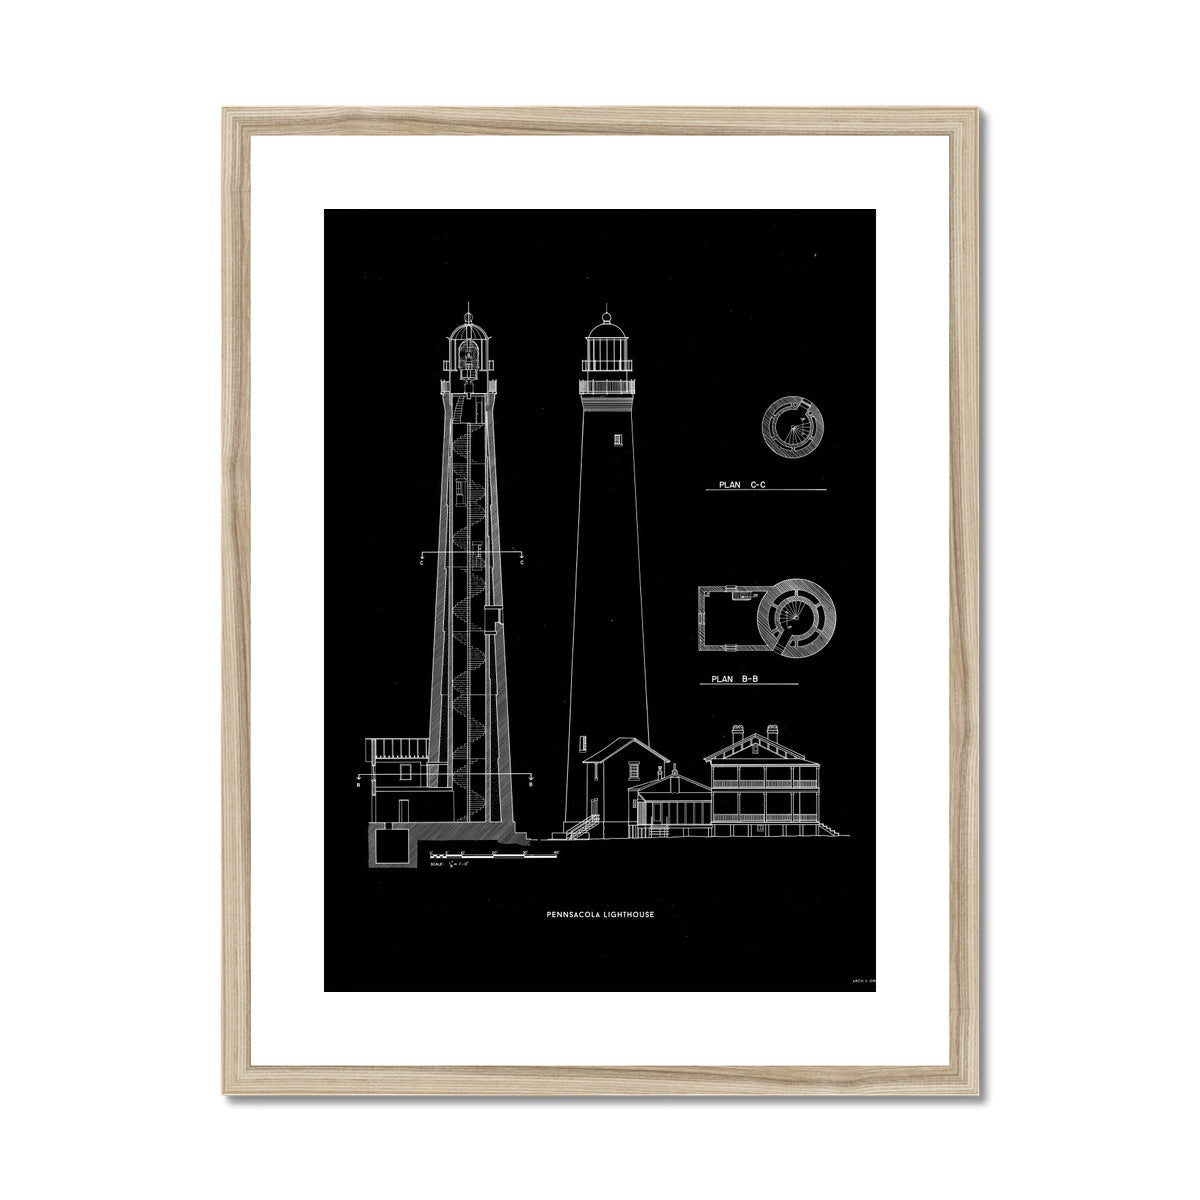 The Pensacola Lighthouse - West Elevation and Cross Section - Black -  Framed & Mounted Print